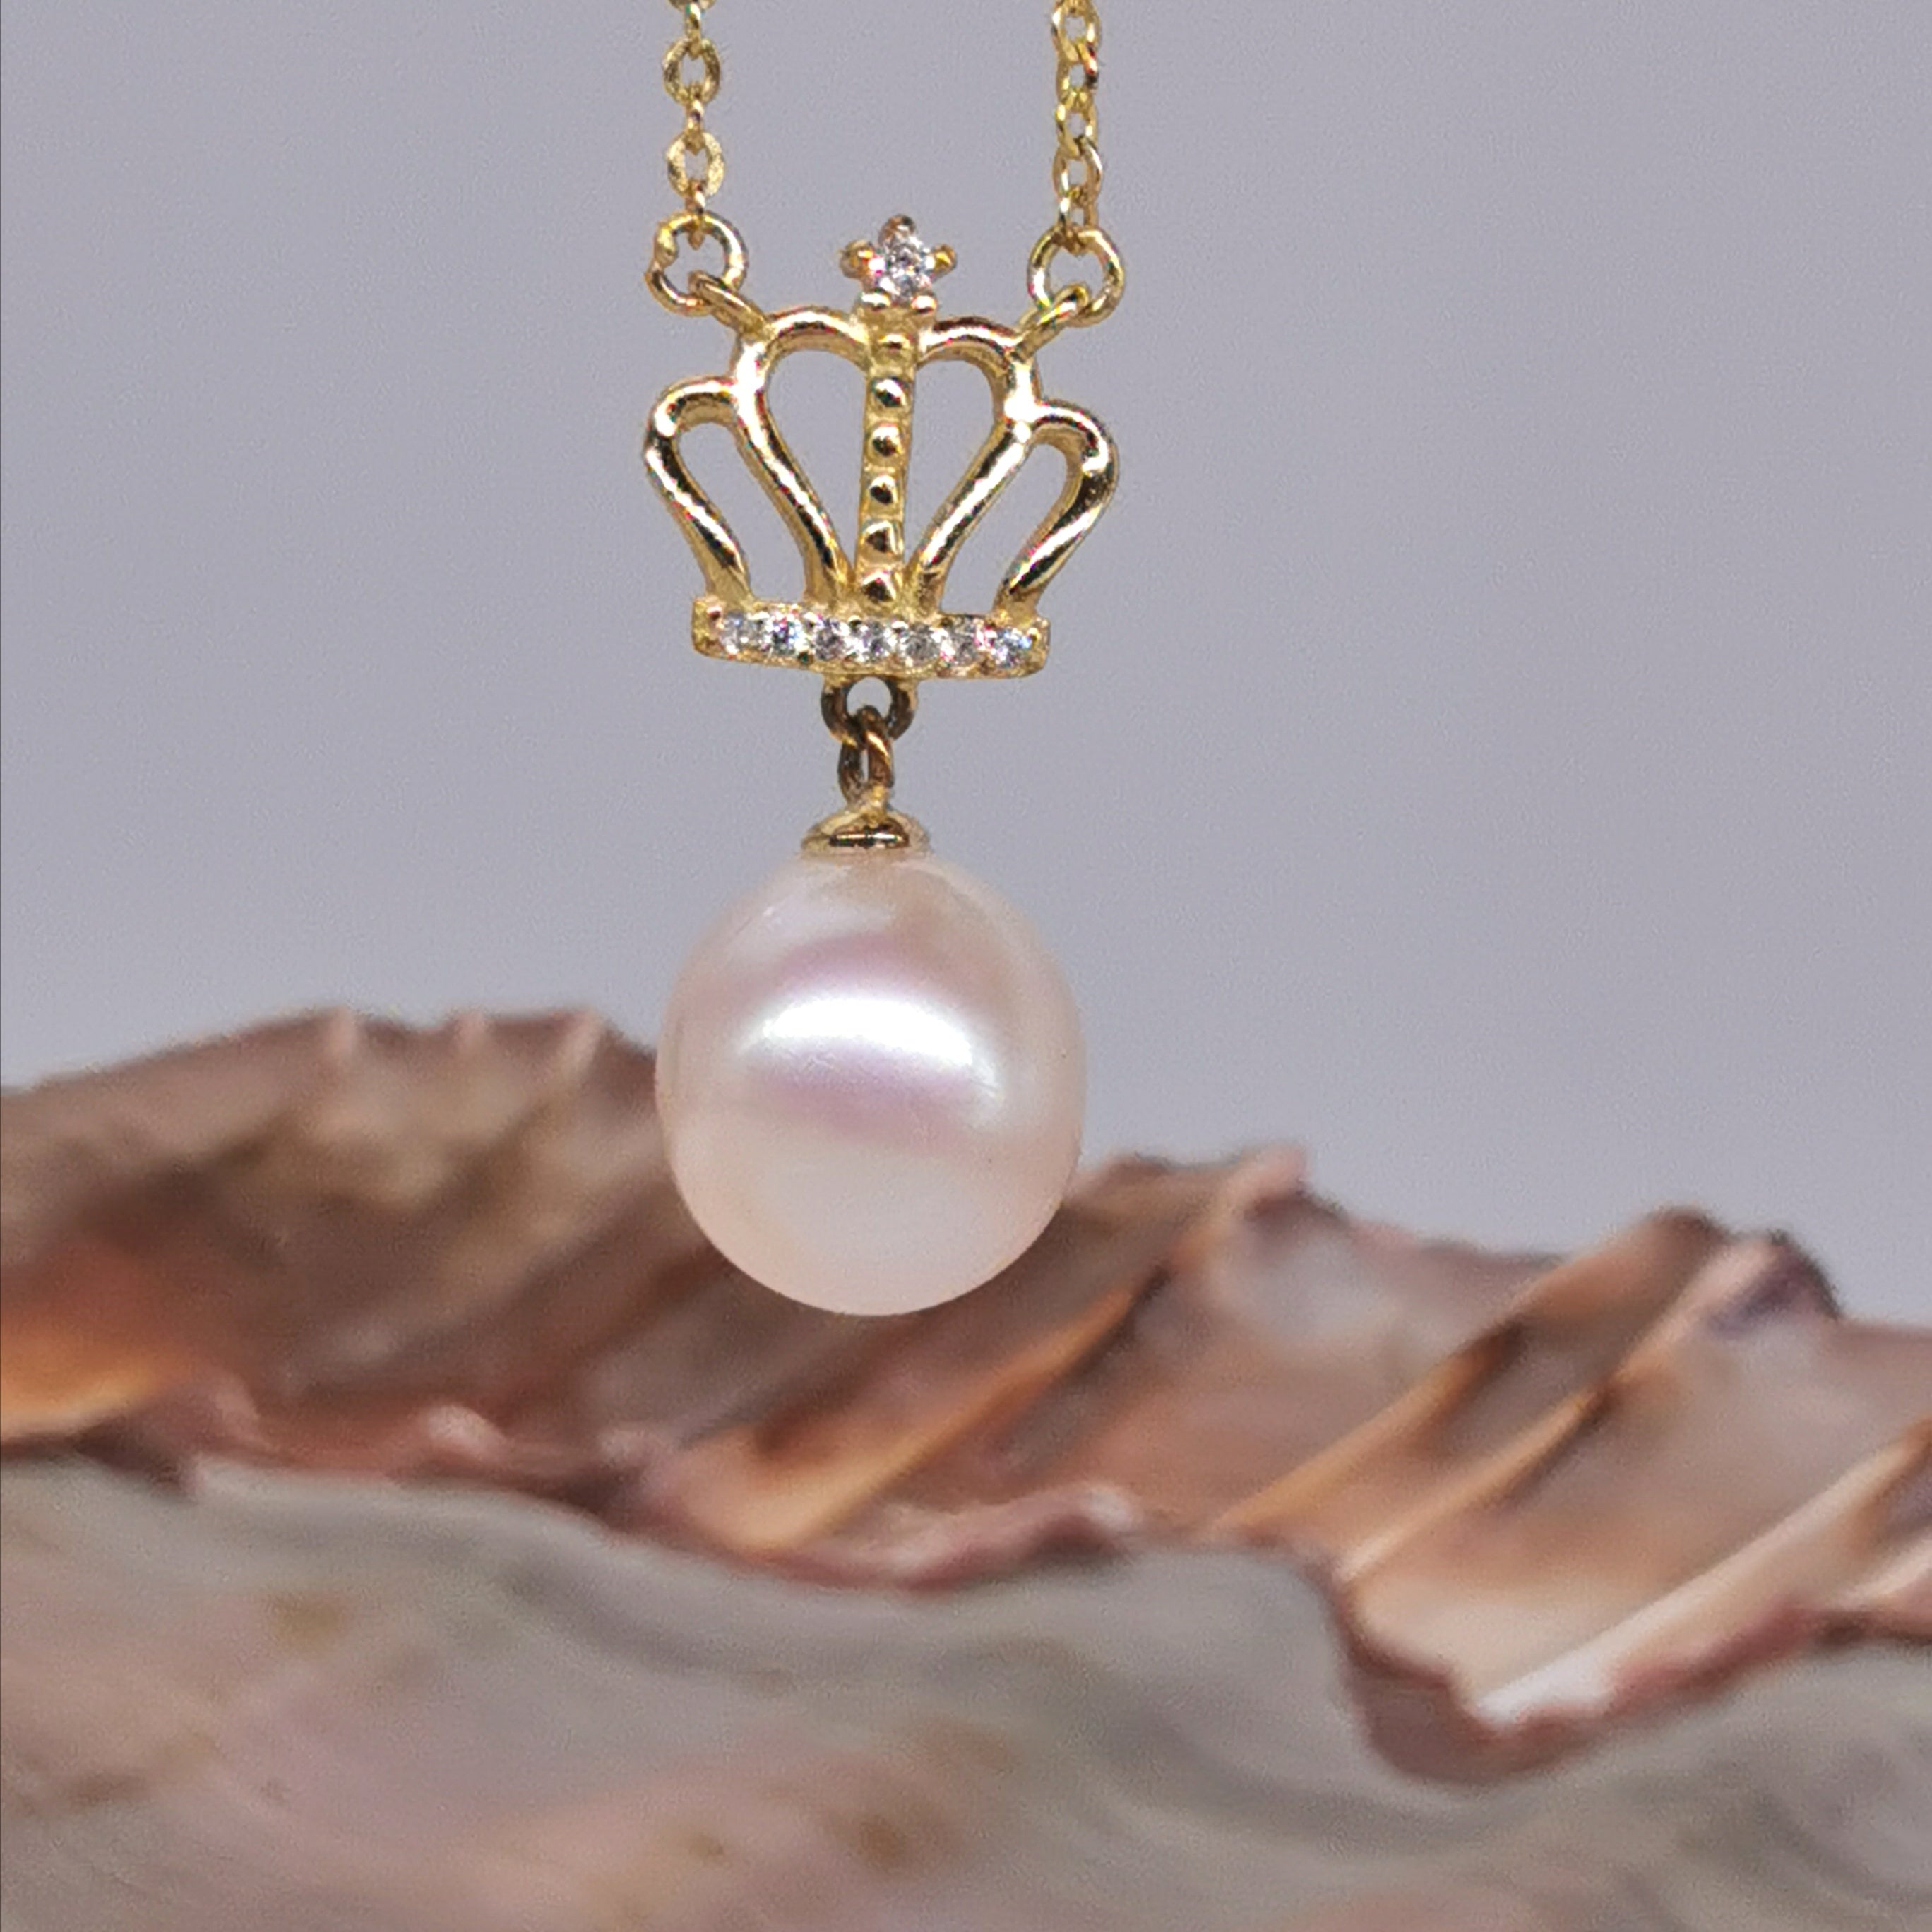 Crown Sterling silver with  10mm freshwater pearl necklace